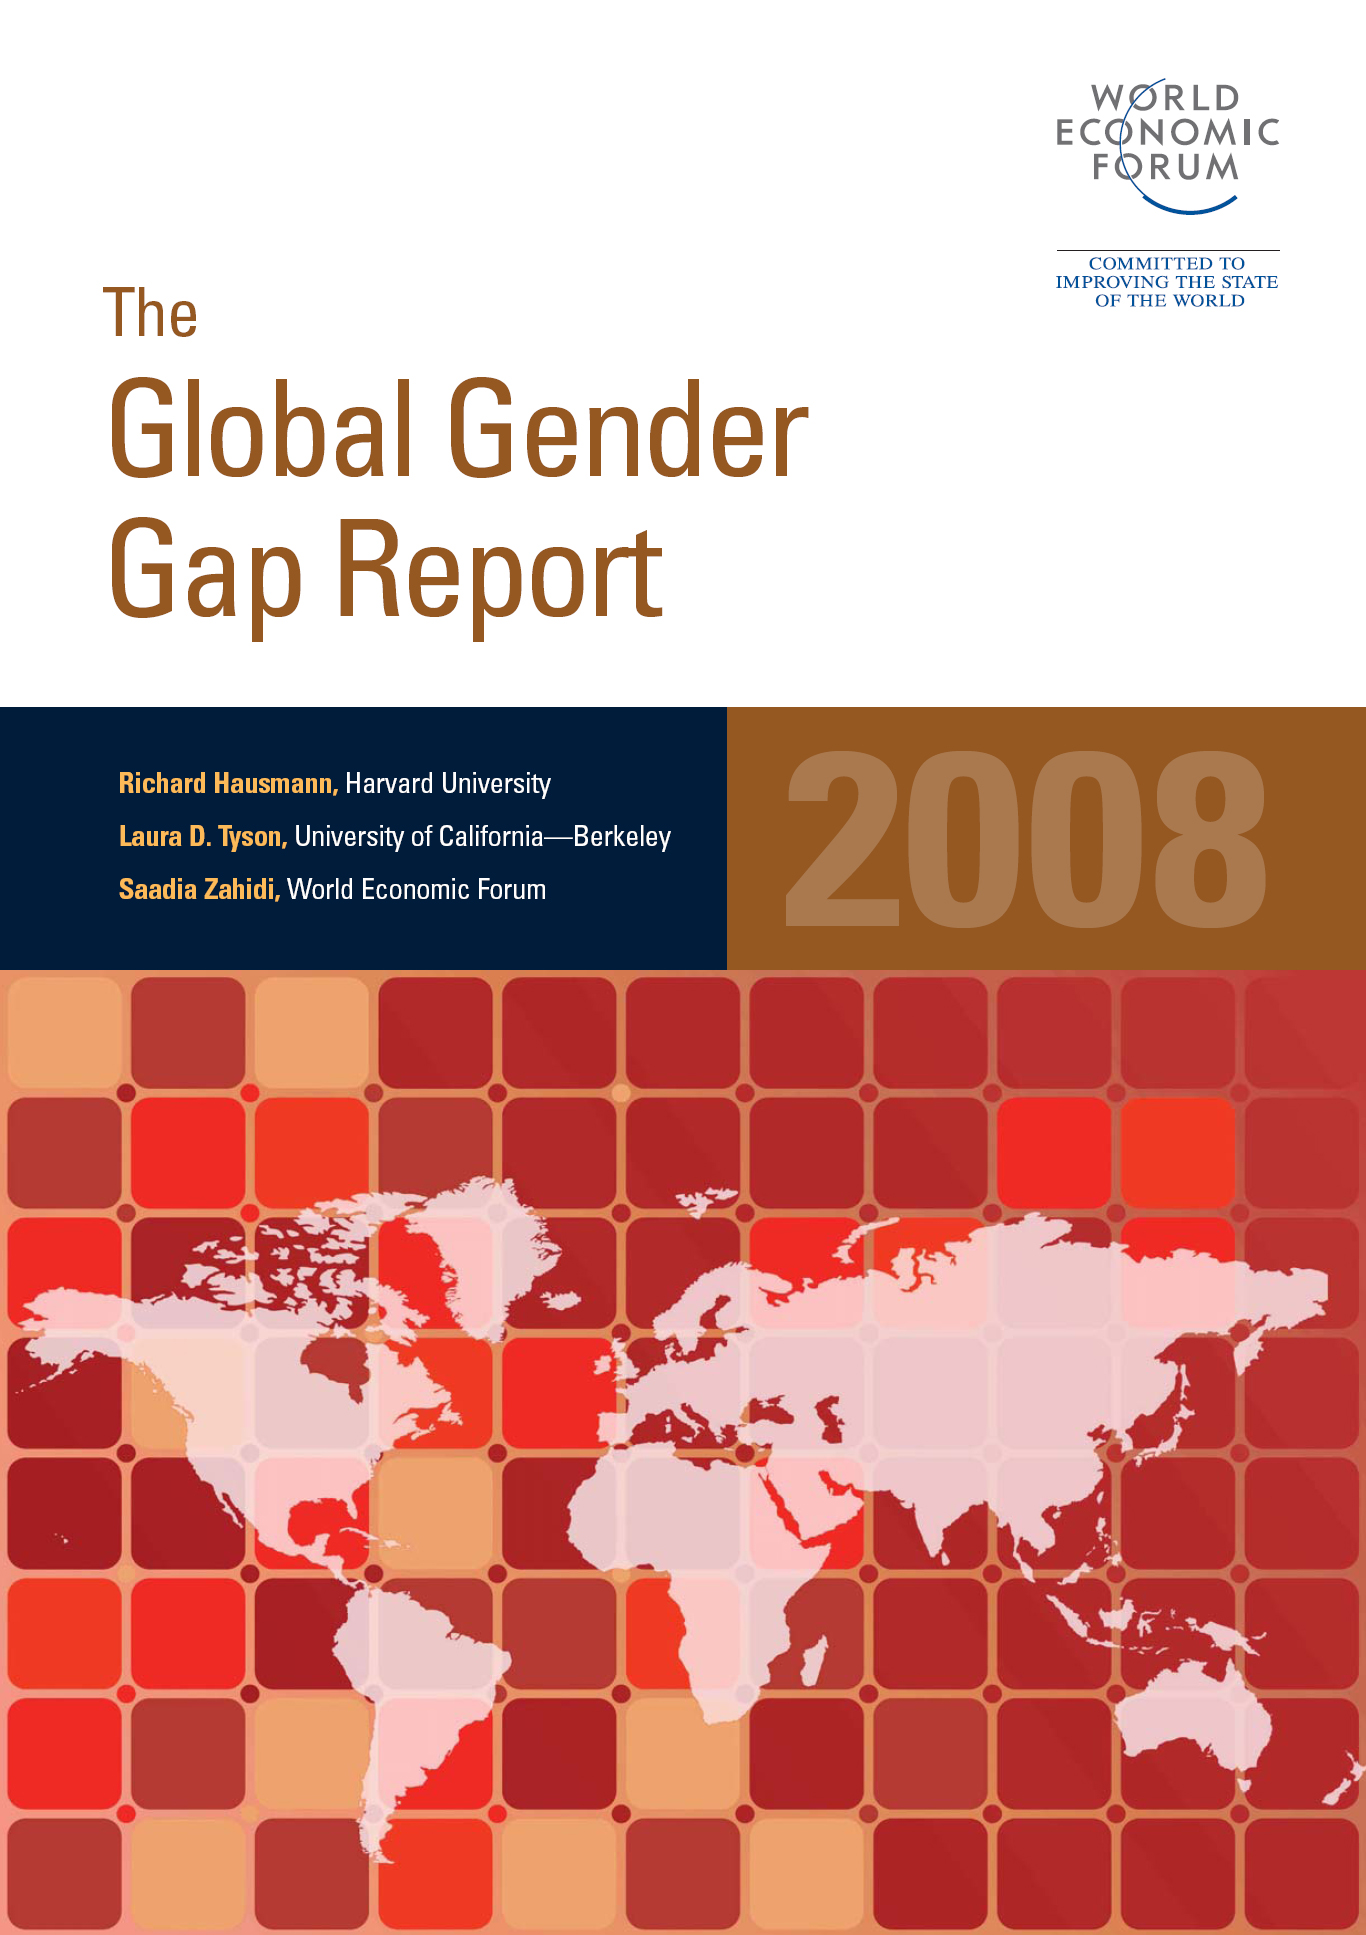 What Is Gap >> Global Gender Gap Report - Wikipedia